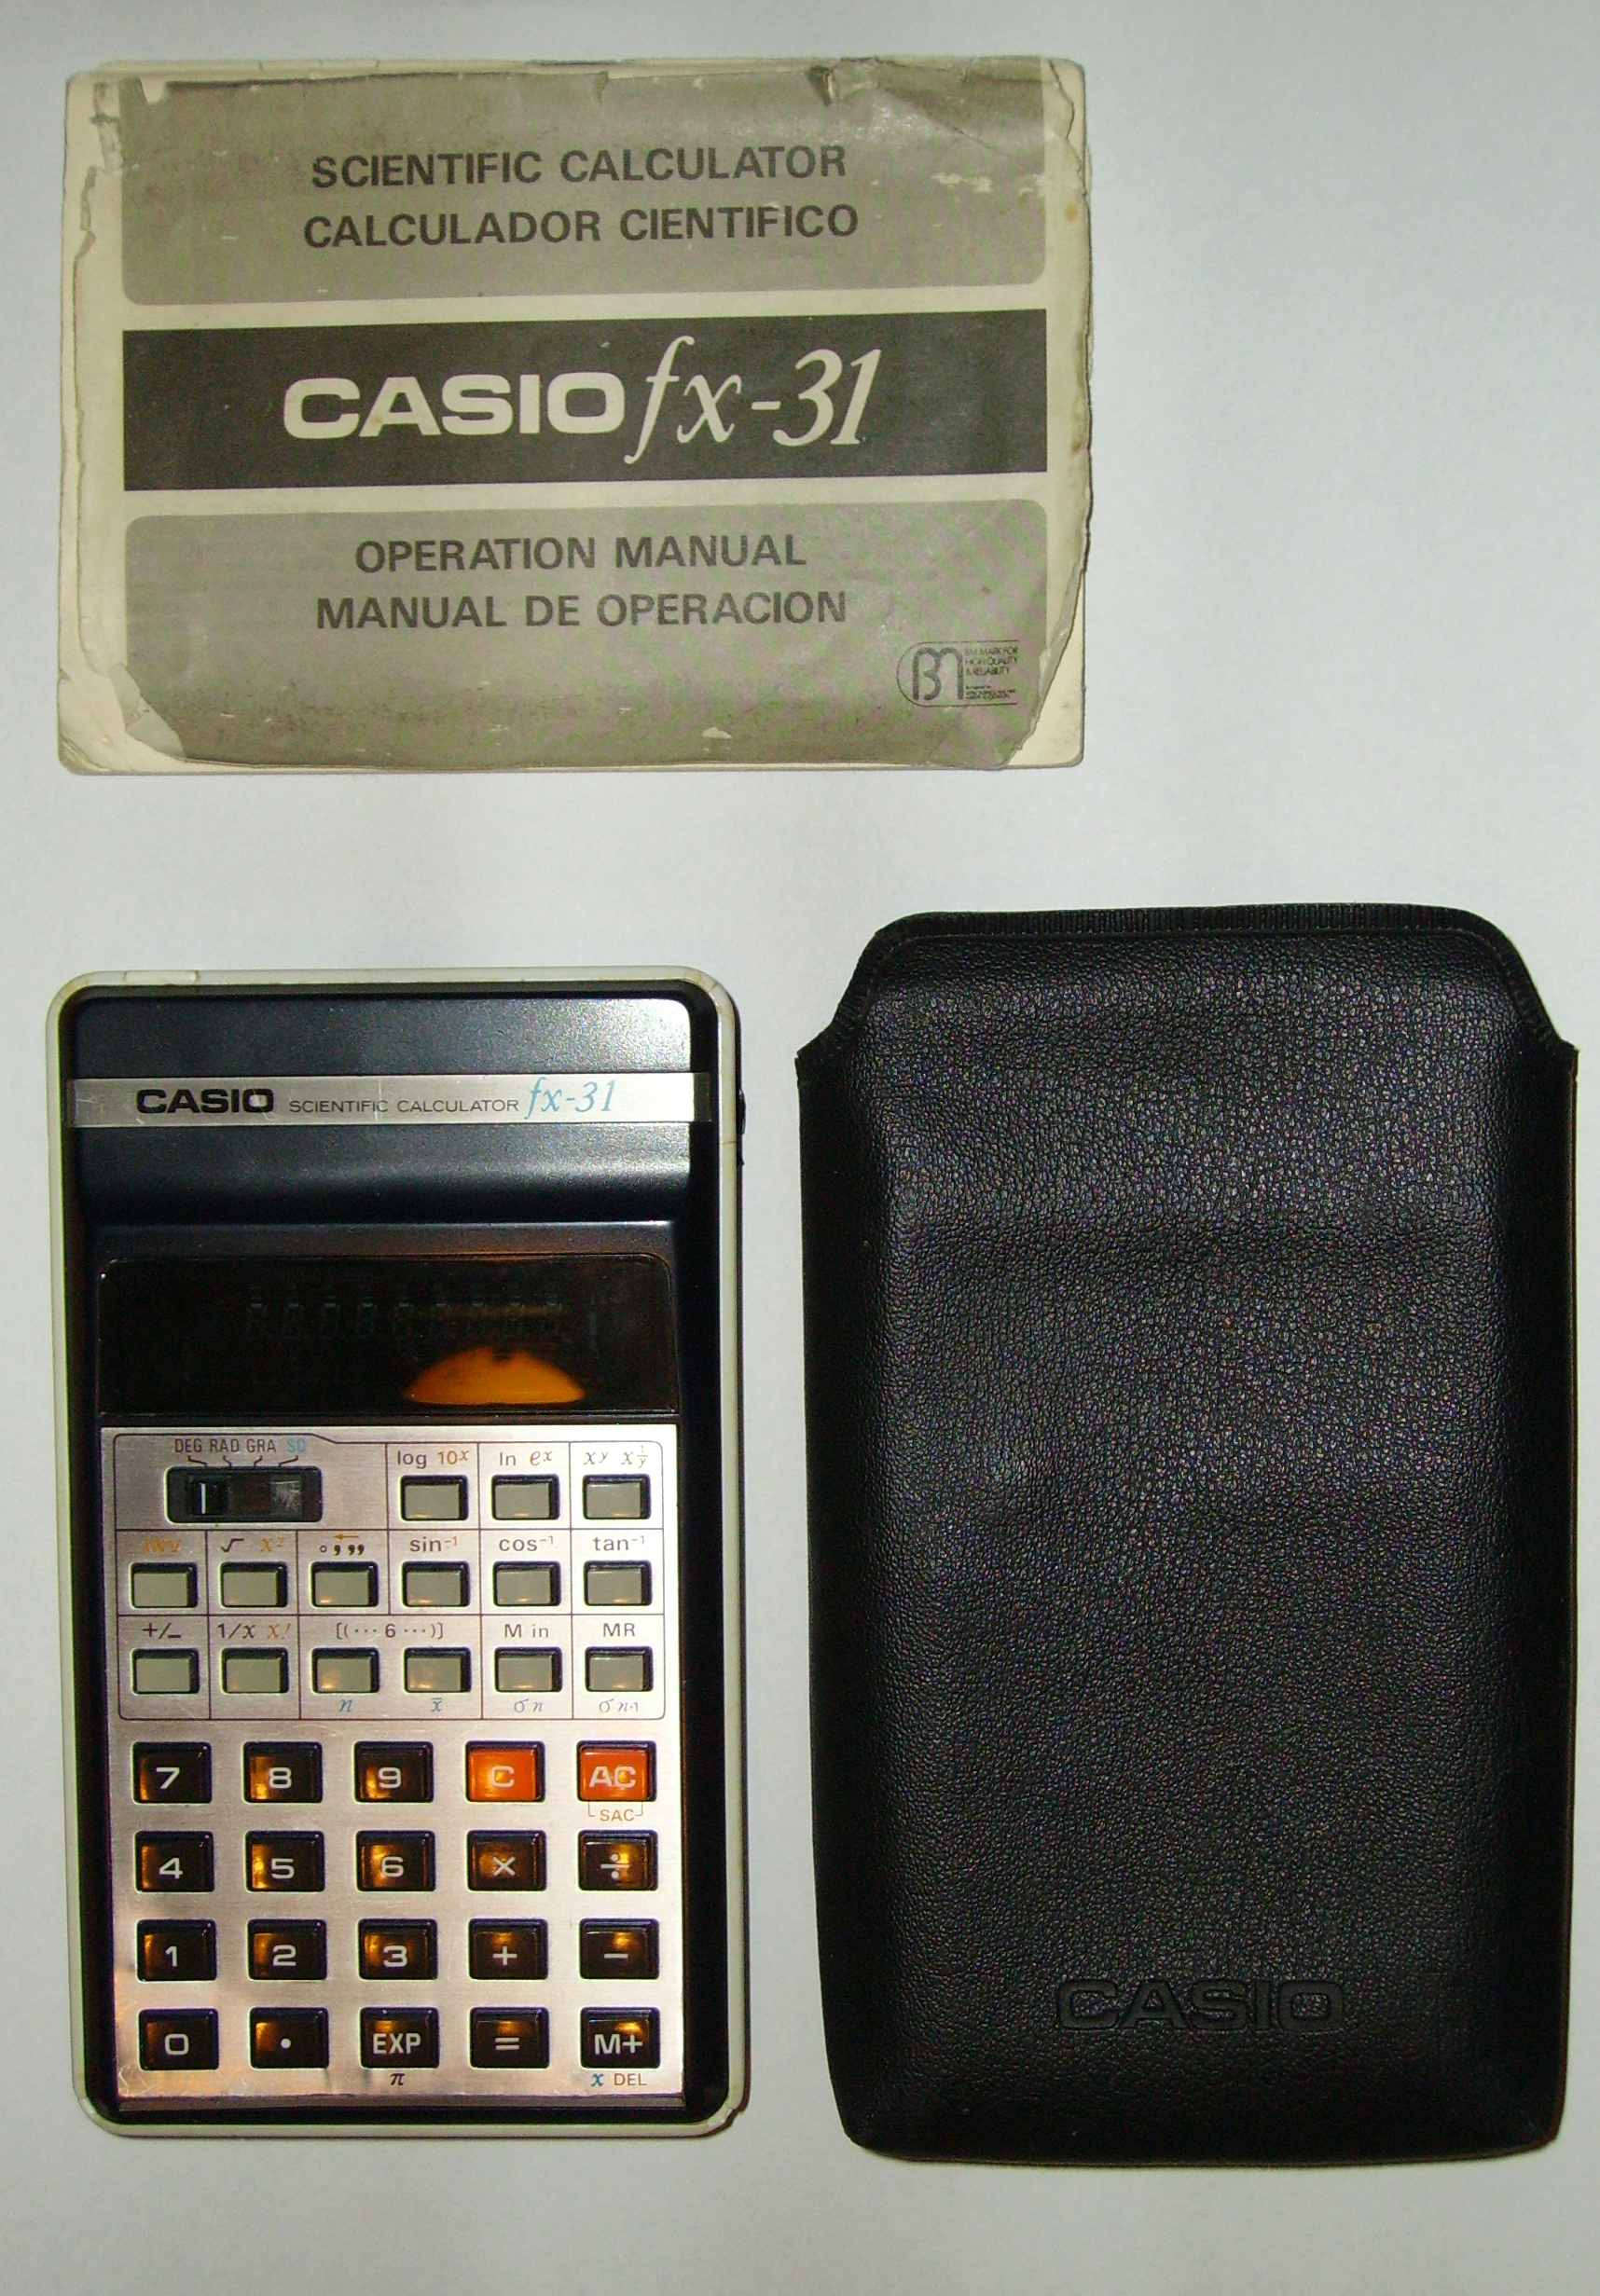 File:Casio fx-31 with case and manual.jpg